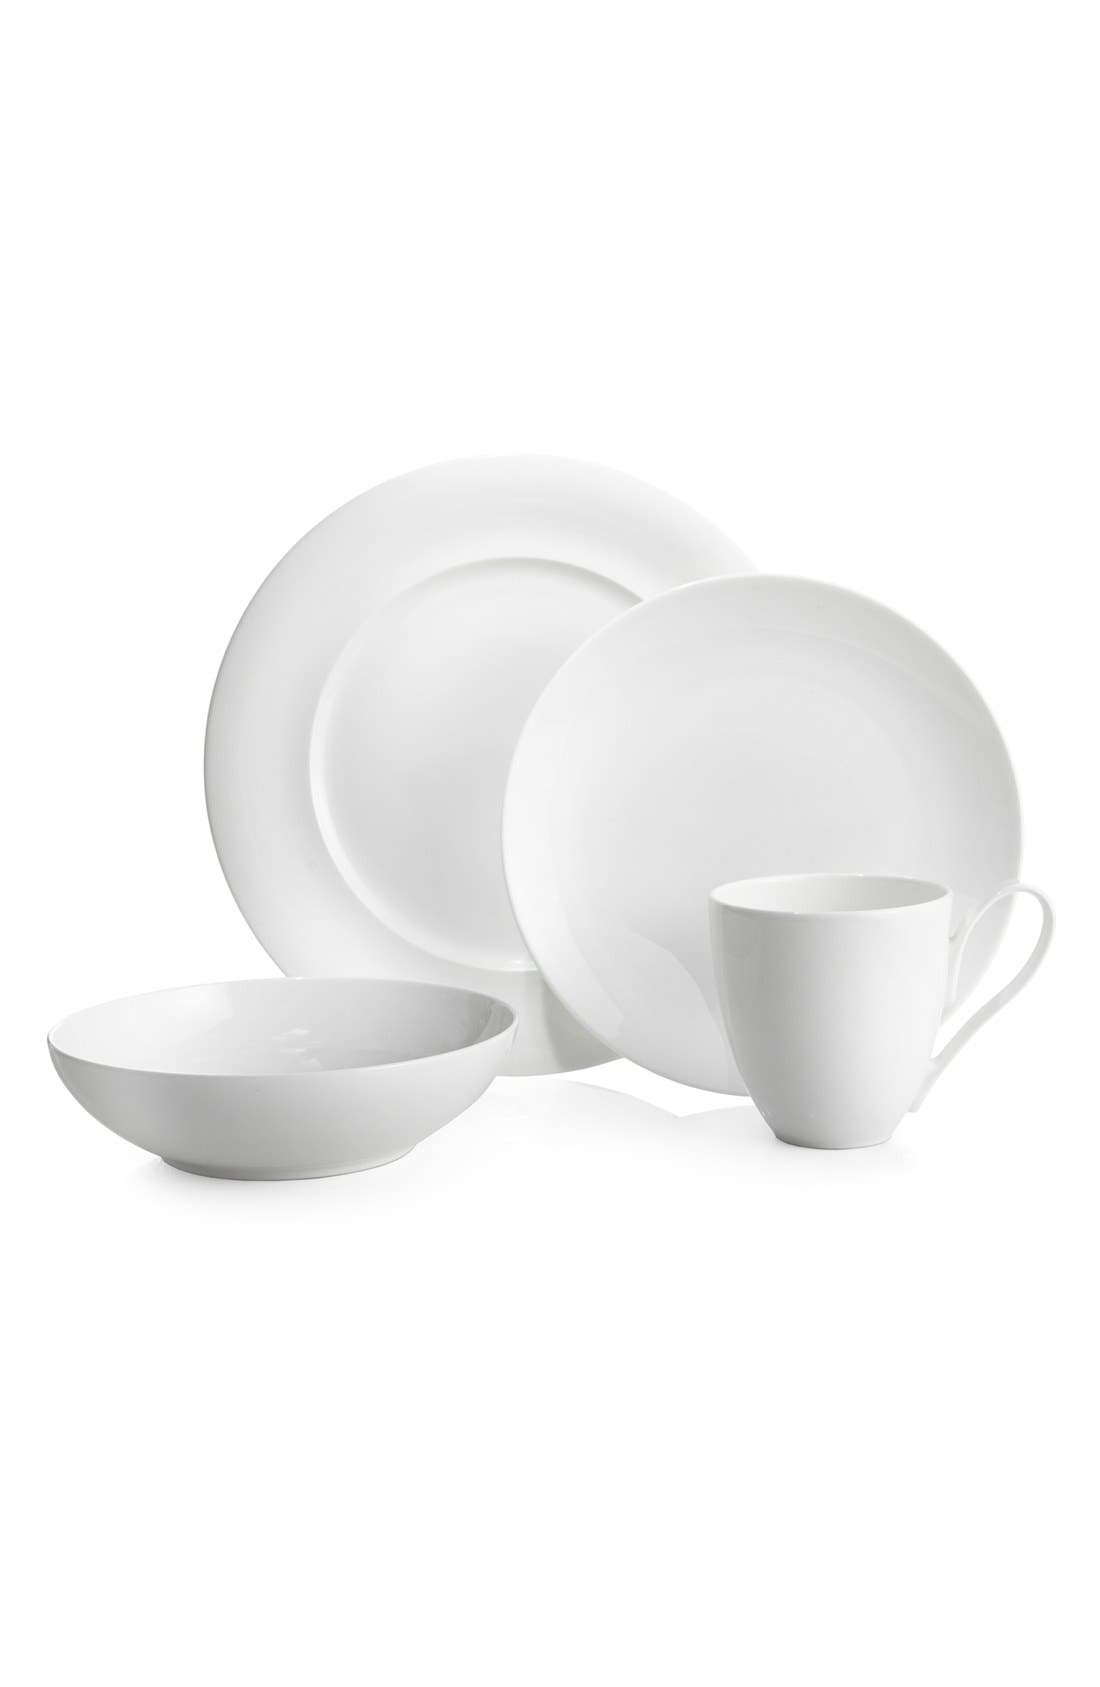 'Skye Collection' 4-Piece Bone China Place Setting,                             Main thumbnail 1, color,                             WHITE